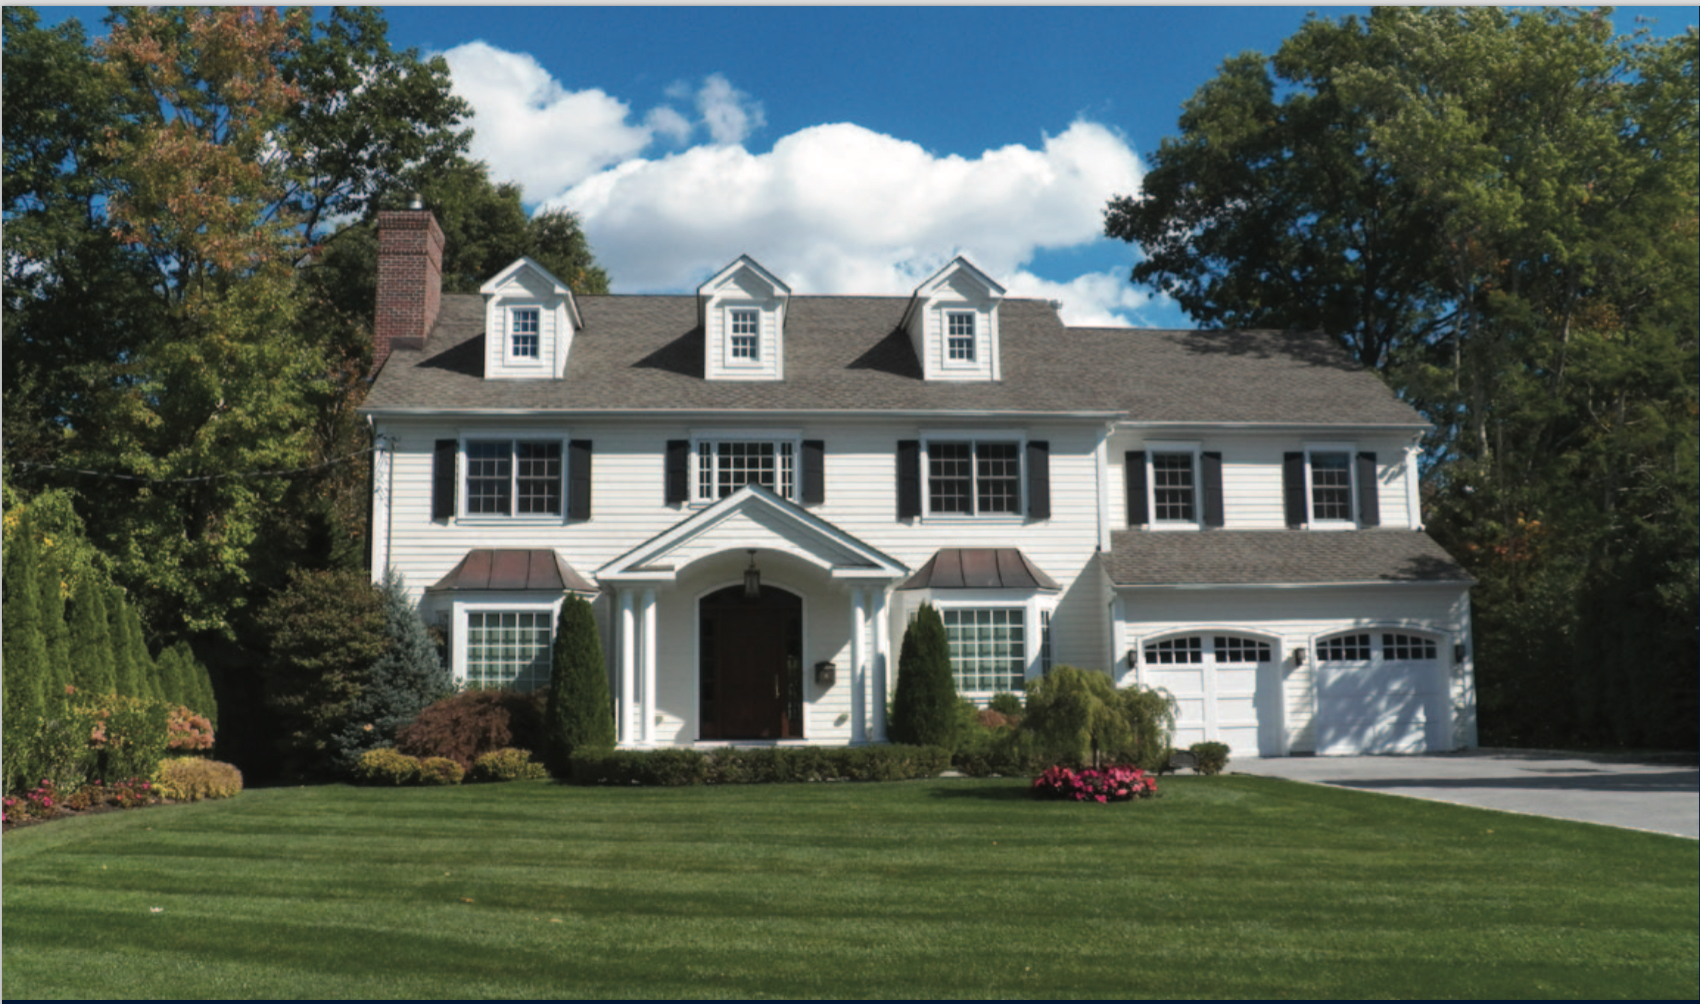 SOLD  3 Hillview Drive Scarsdale, NY Represented the Seller as the Listing Agent